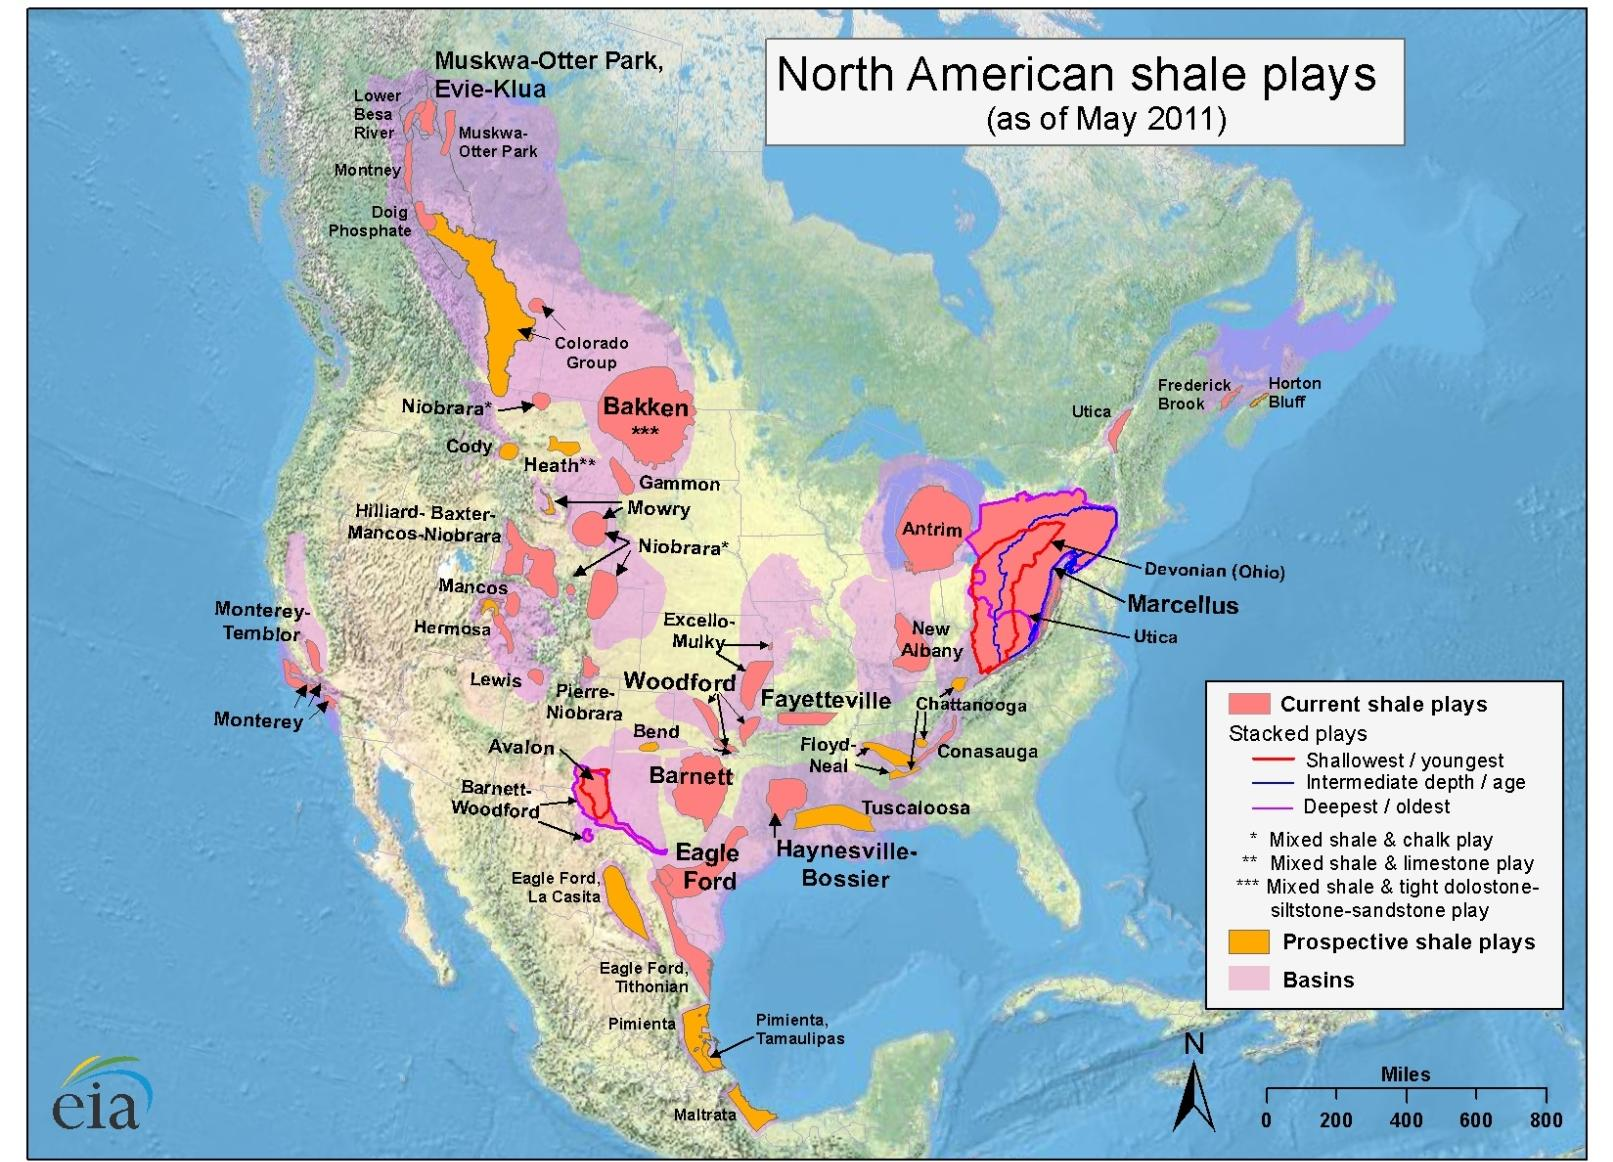 Shale gas production is still a North American story Source: U.S. Energy Information Administration based on data from various published studies.